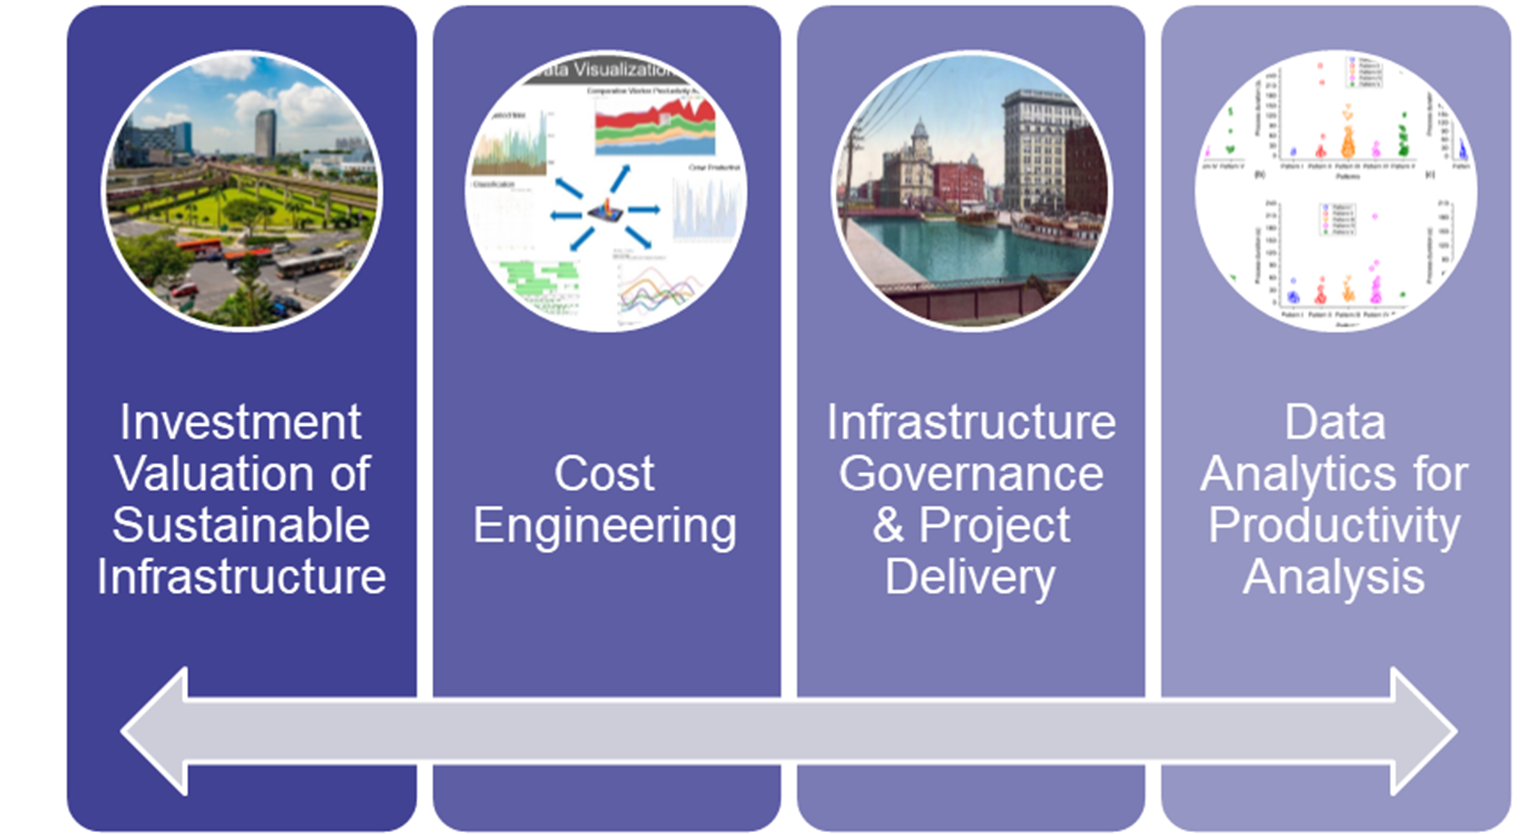 A slide highlighting four research titles starting with Investment Valuation of Sustainable Infrastructure, second is Cost Engineering, third is Infrastructure Governance & Project Delivery, and fourth is Data Analytics for Productivity Analysis